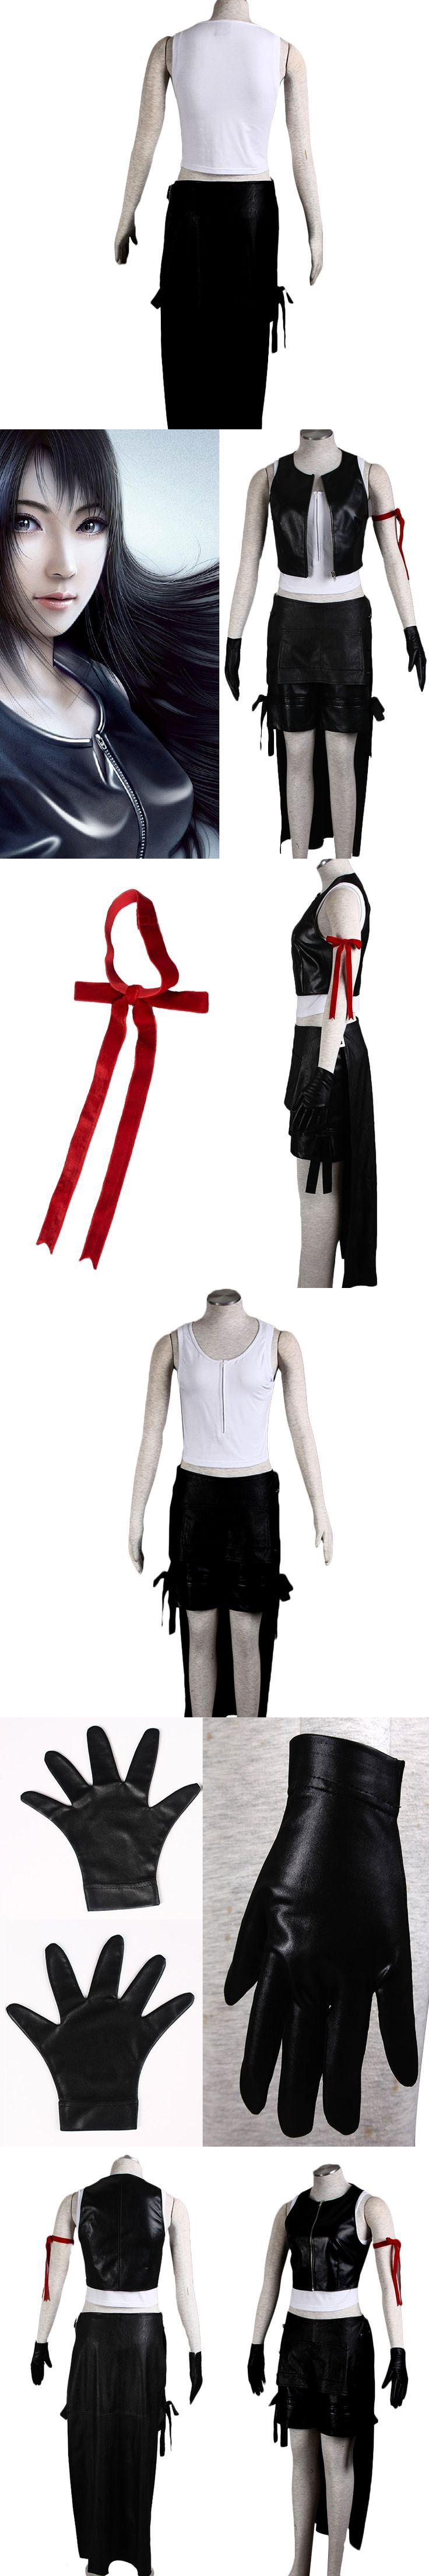 Anime Final Fantasy VII New 1 Tifa Lockhart Women's Performance 6 Sets Cosplay Costumes Tifa Clothes Full Set Halloween Clothing